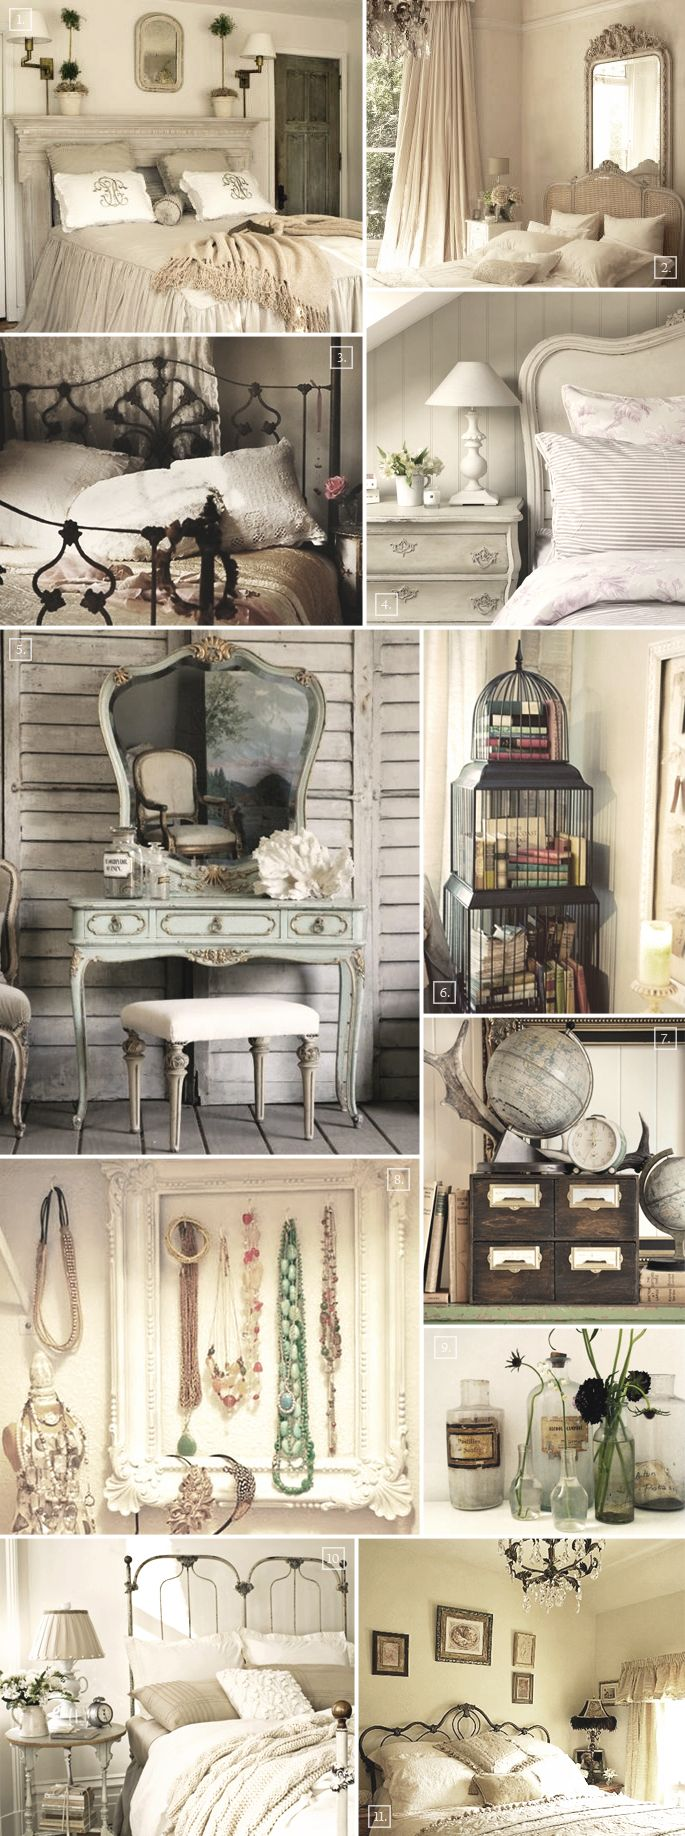 Color Scheme: For a vintage style bedroom you'll want to go with more neutral and pastel colors like light grey, light brown, light green, or just white as seen in pictures (1) and (2). Bed Styles: Wrought iron (3) or French bed designs with the large decorative headboards (4) are the best choices. Look for […]